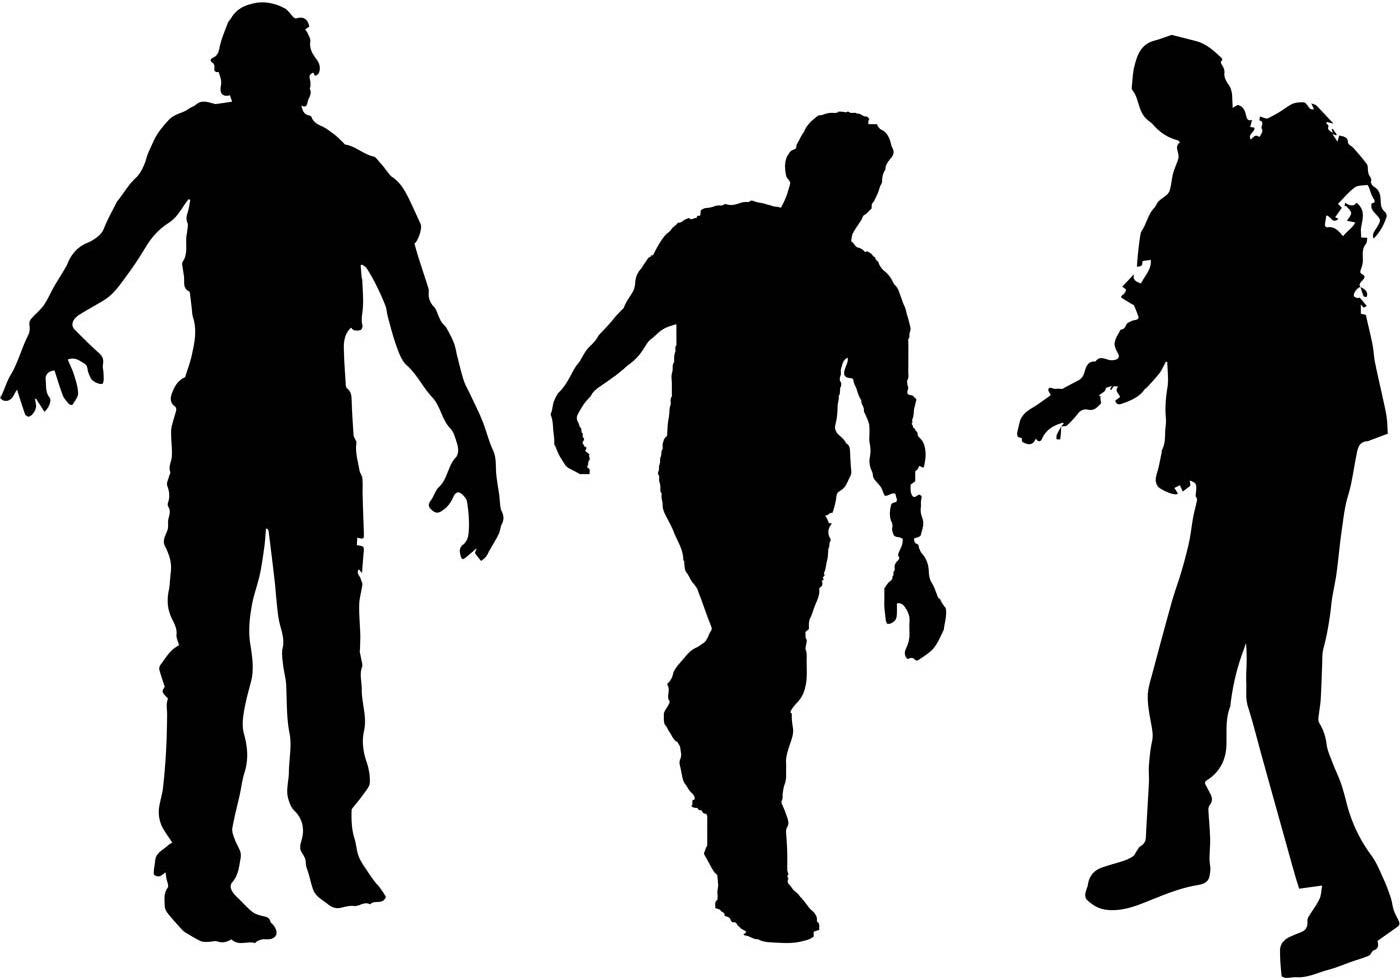 Free Zombie Silhouette Vector - Download Free Vector Art, Stock ...